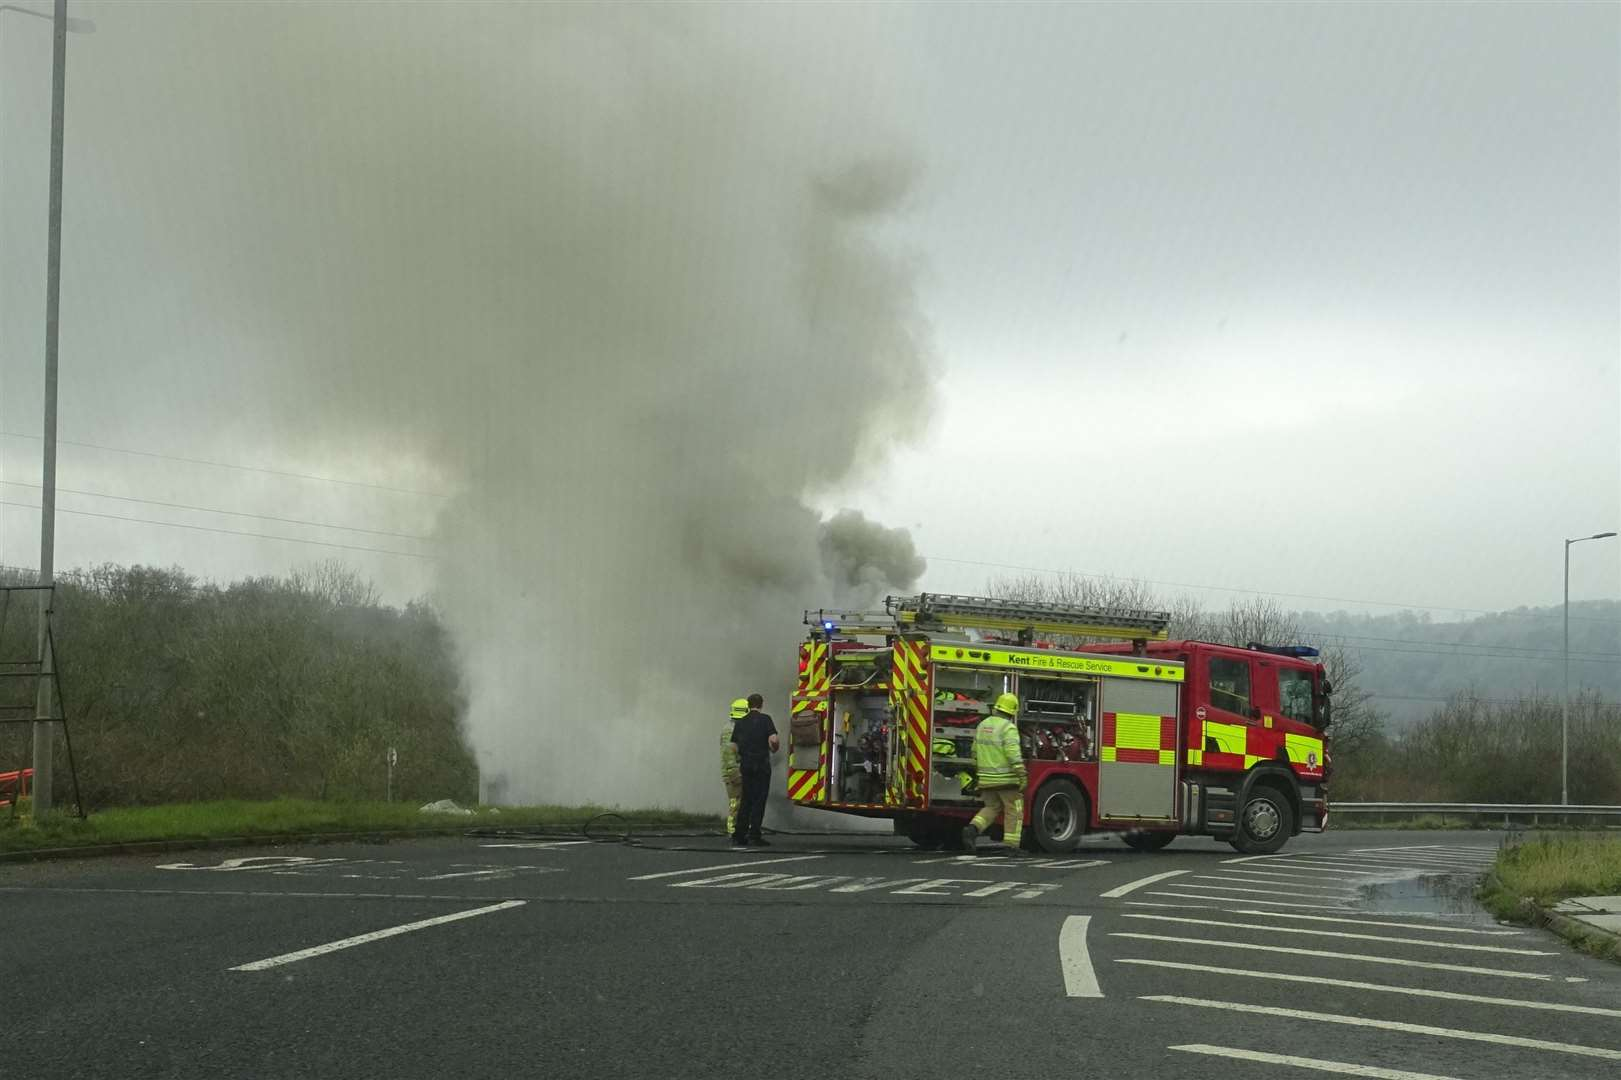 Smoke rises from a car on fire at Junction 7 of the M20. Picture: Sylvia Herbert (25349495)